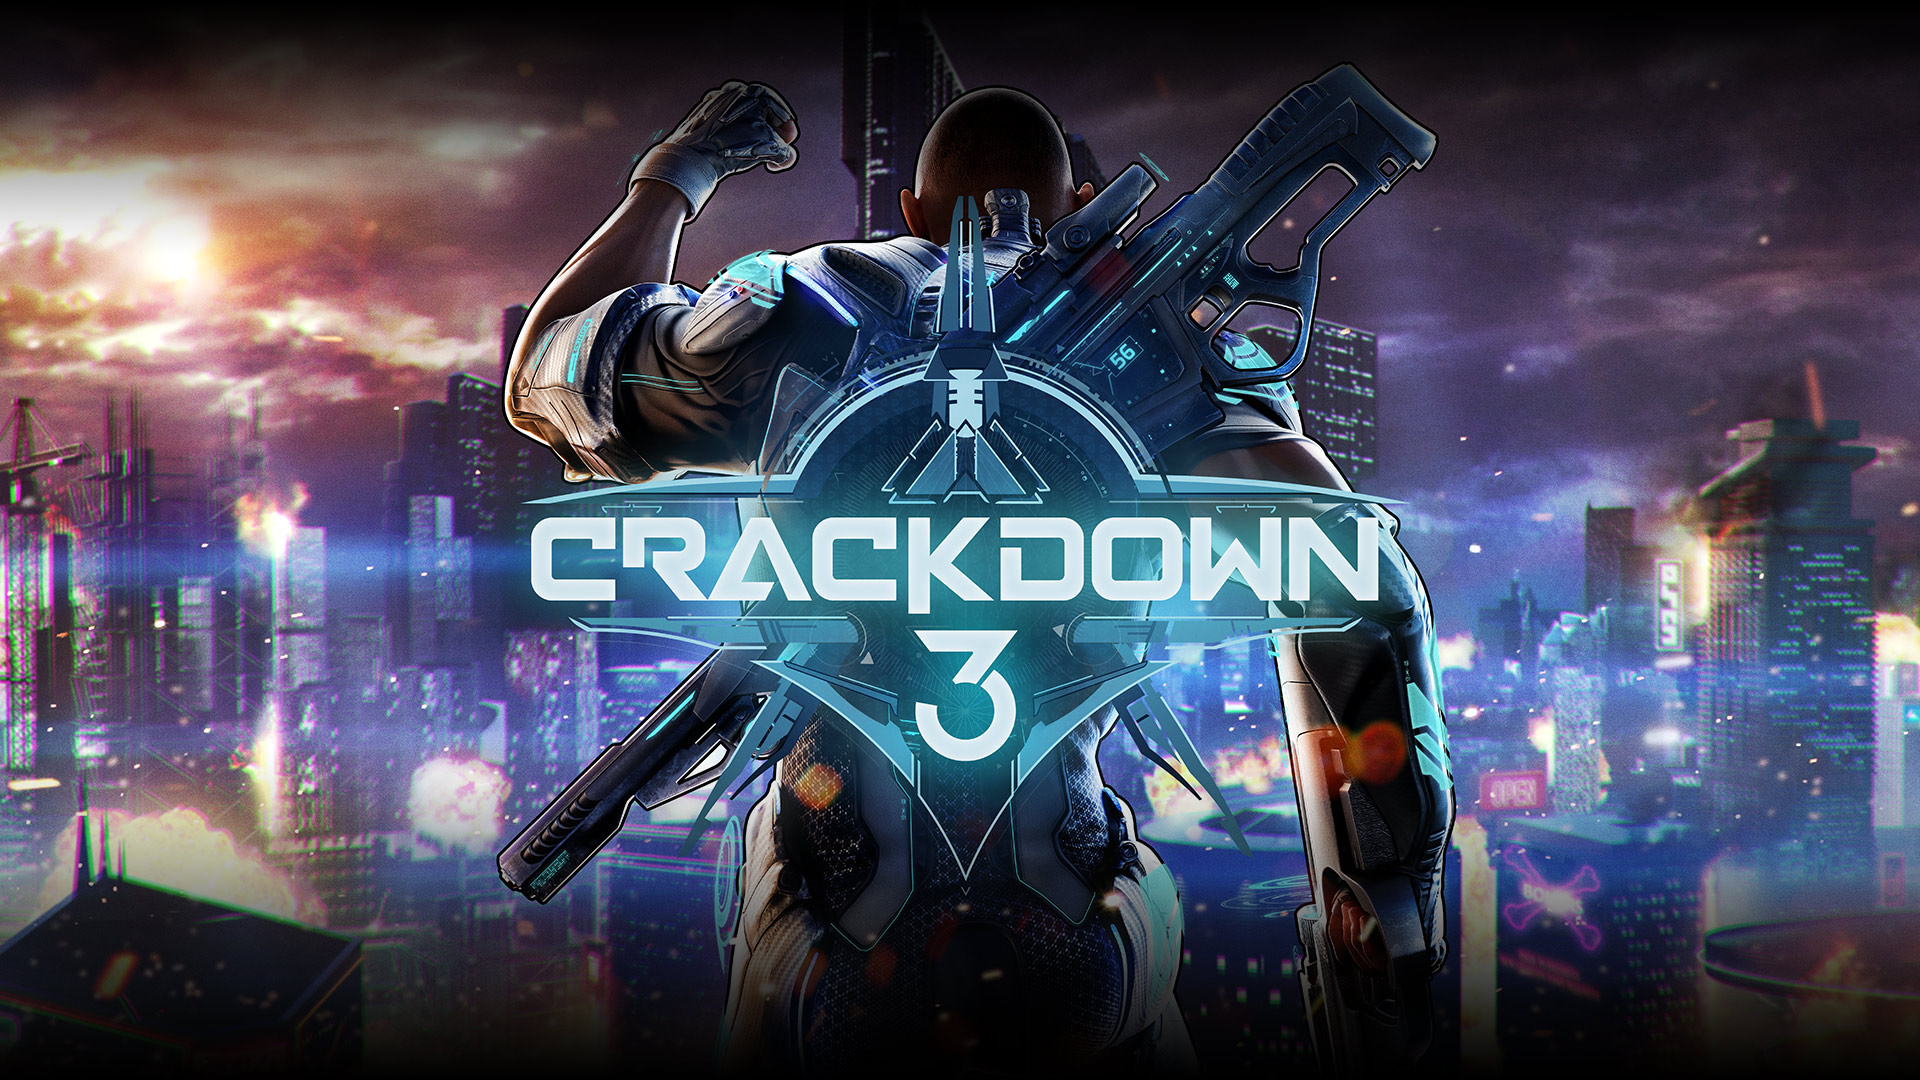 xbox one exclusive games Crackdown 3